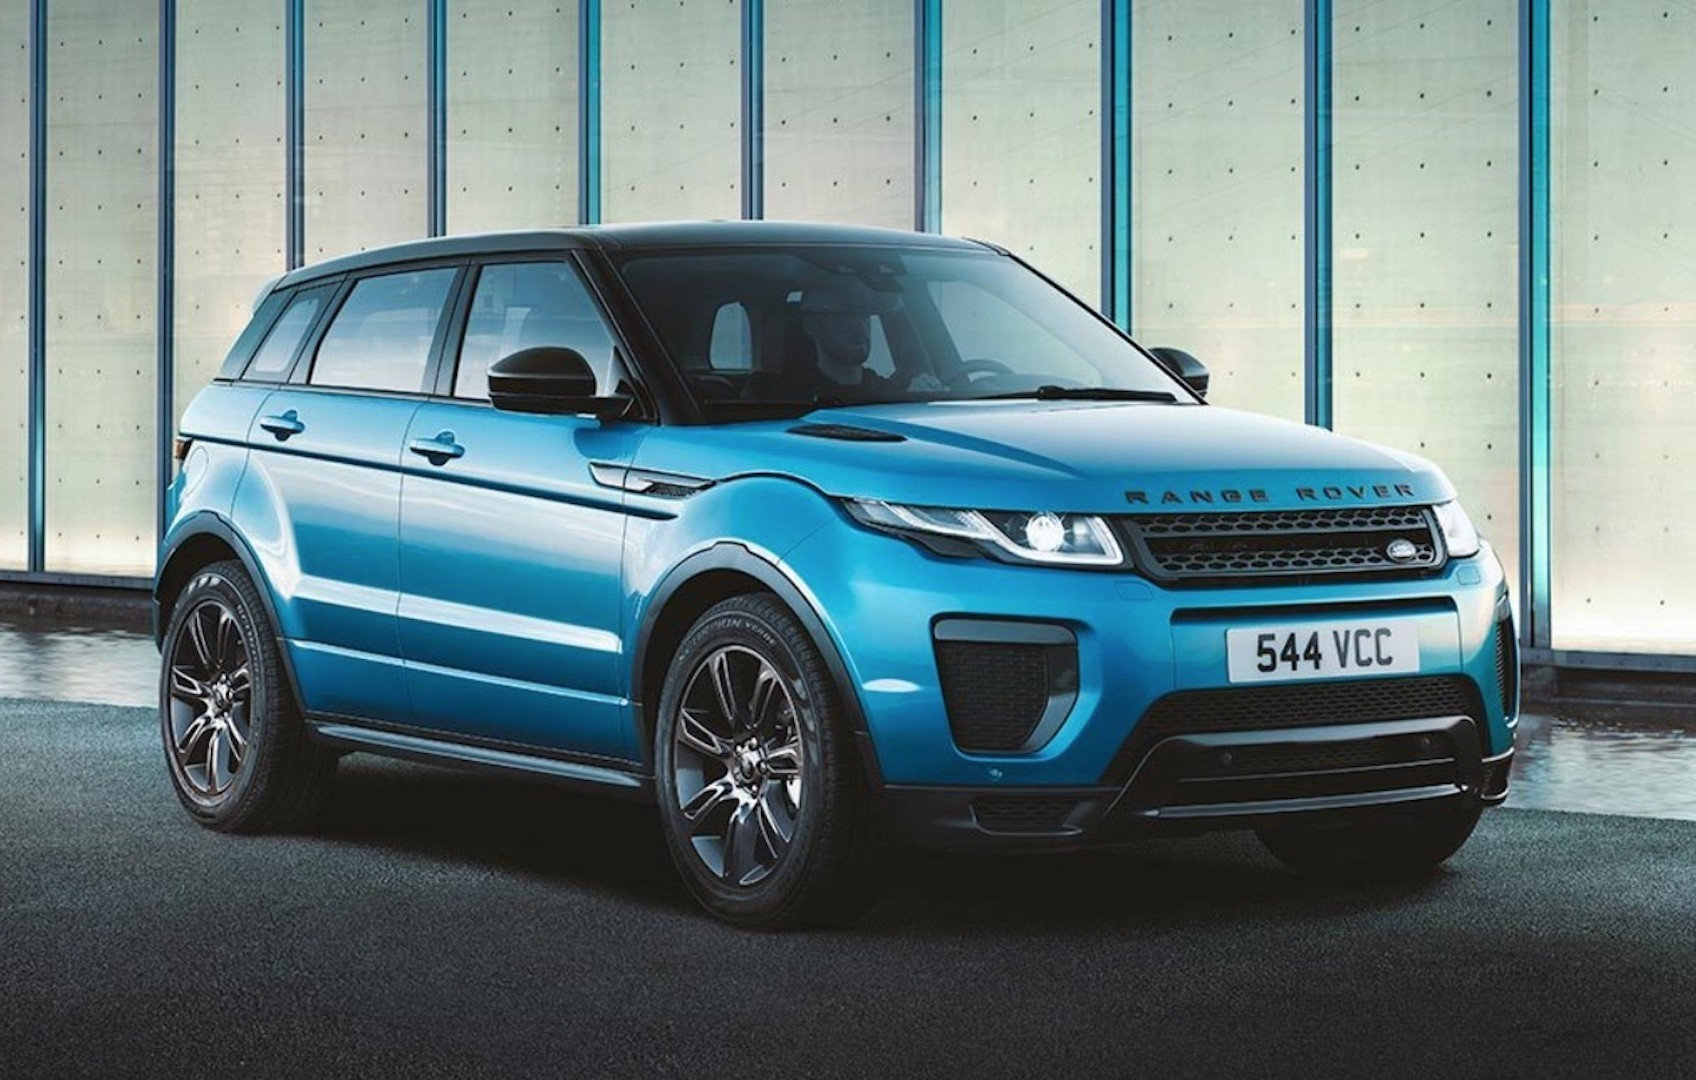 RANGE ROVER EVOQUE MY18 - Land Rover Evoque 2.0 TD4 150 cv. BUSINESS EDITION AUTOMATICA